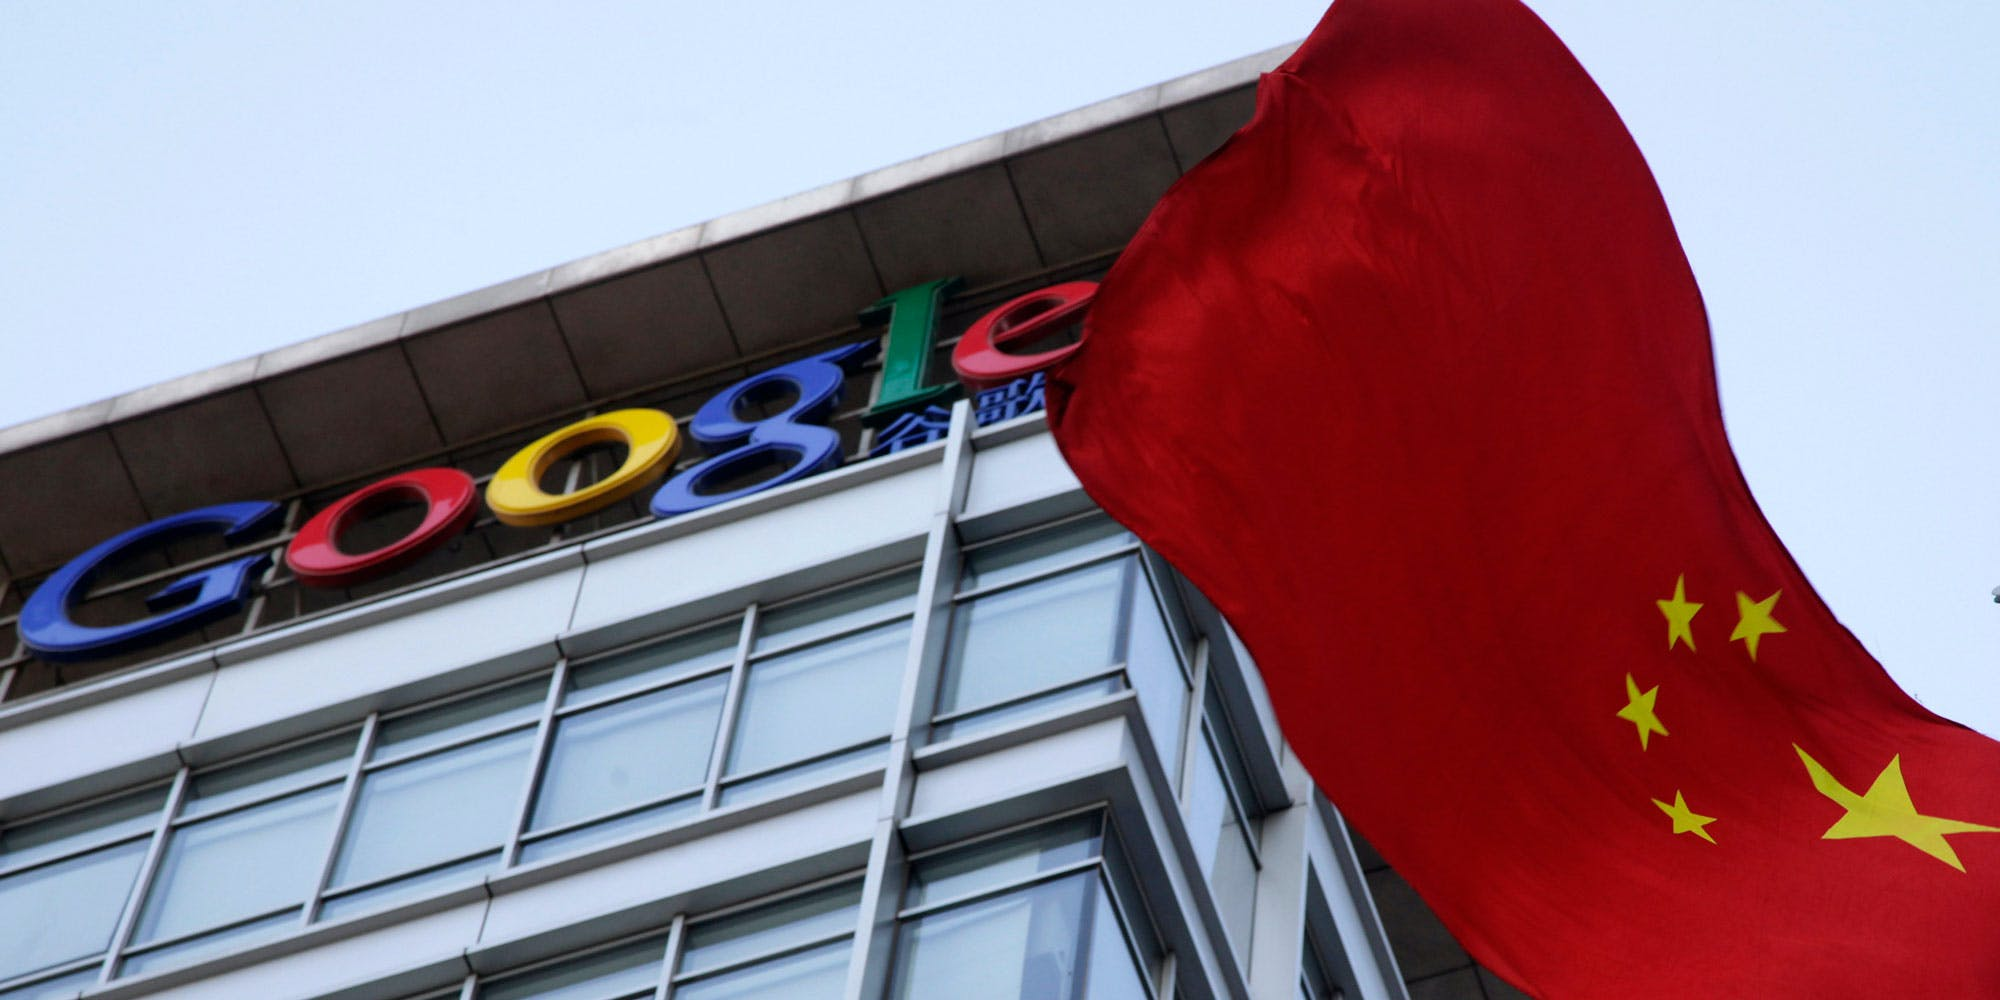 Google Struggles to Contain Employee Uproar Over China Censorship Plans